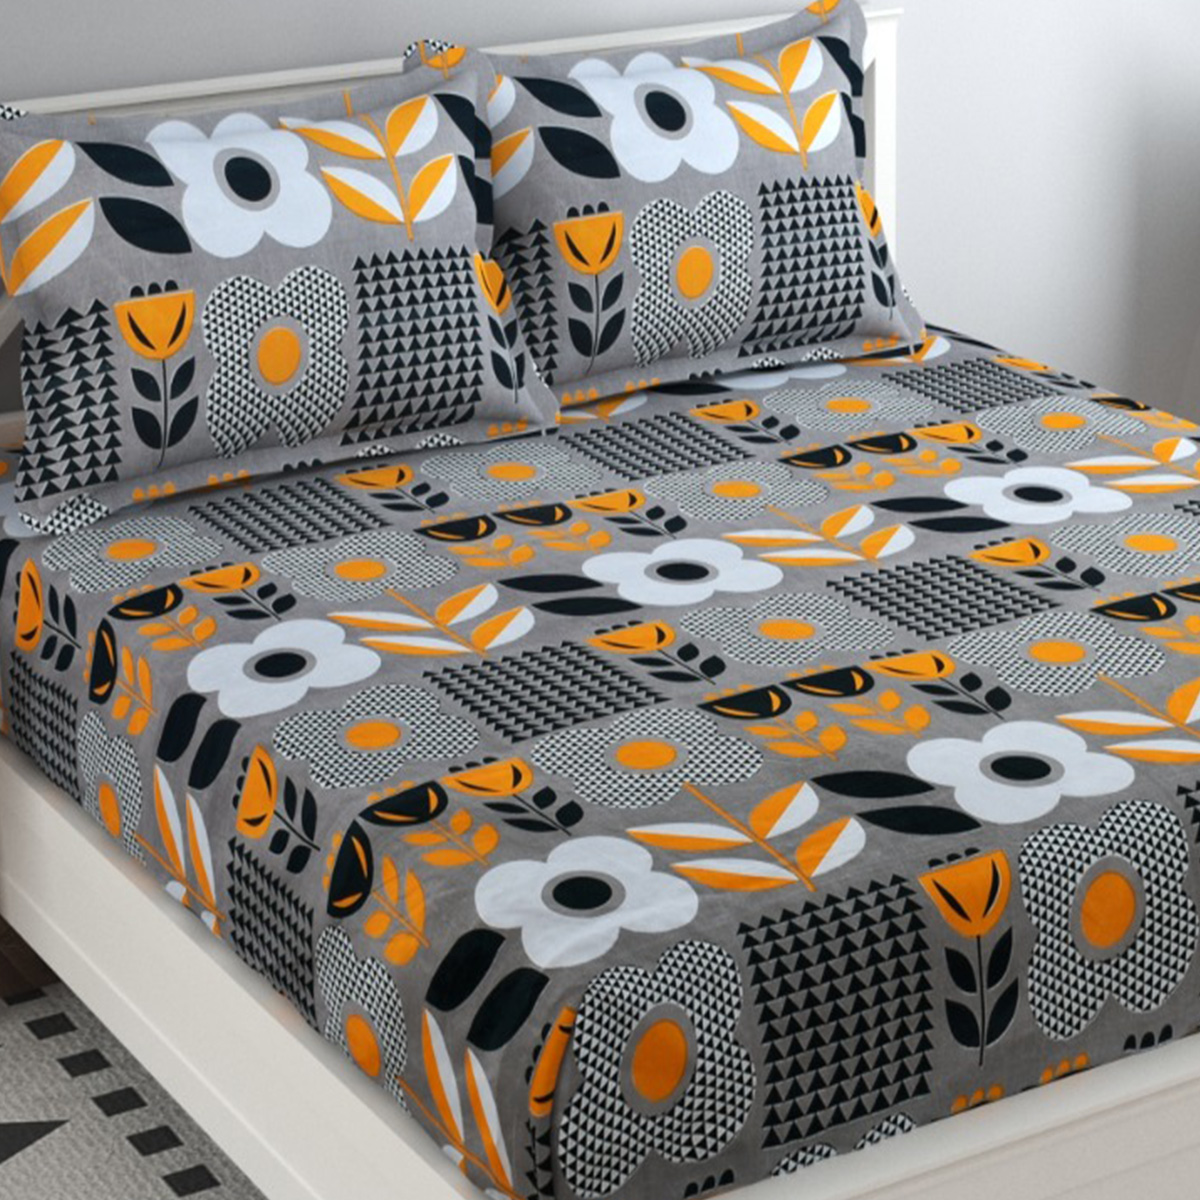 Adirav - Grey Colored Printed Glace Cotton Double Bedsheet With 2 Pillow Cover